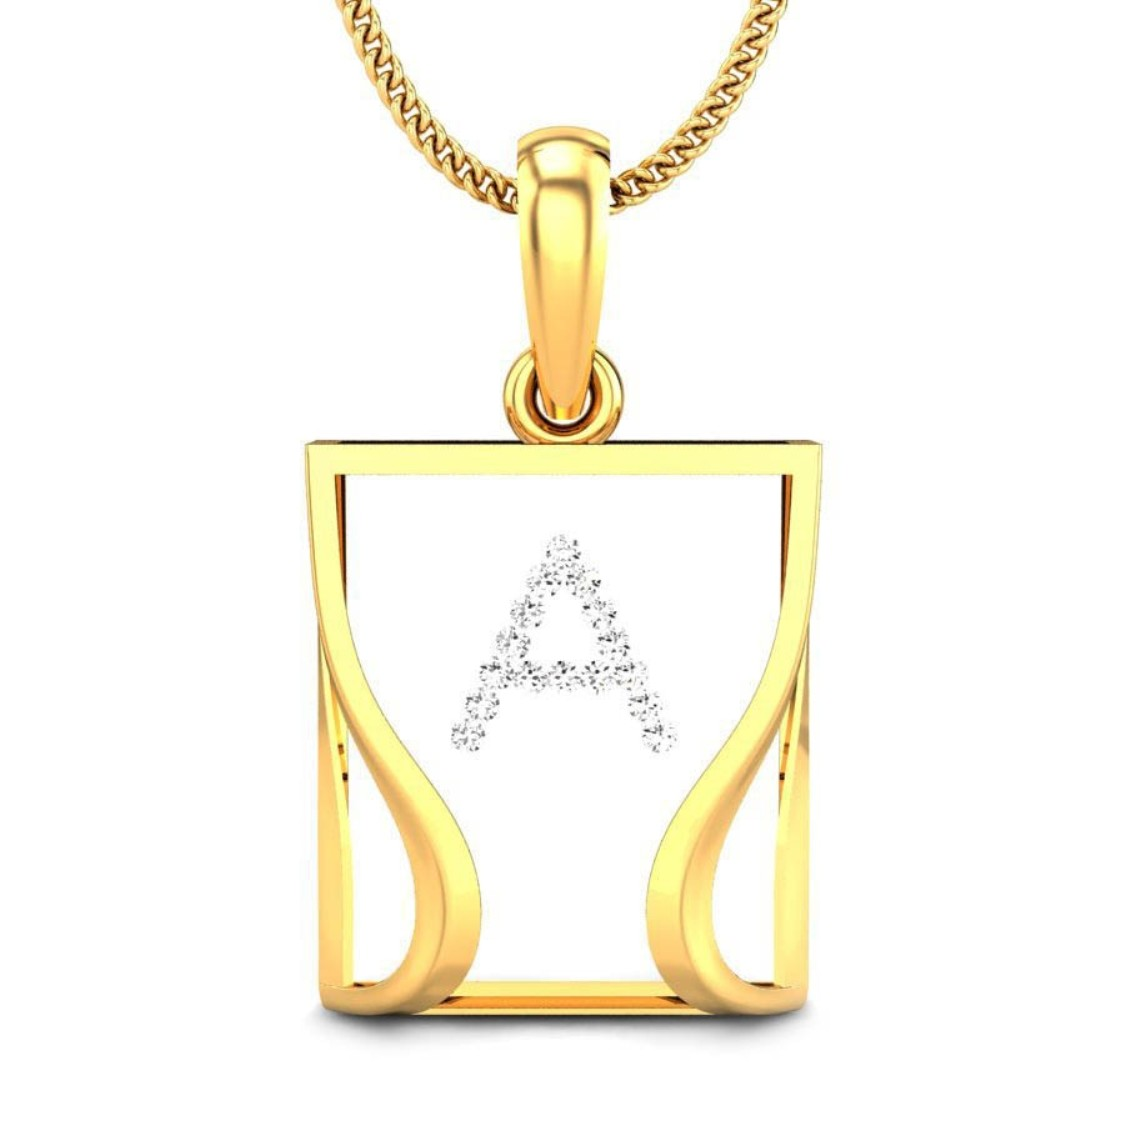 18K Gold Pendant with Real Diamonds